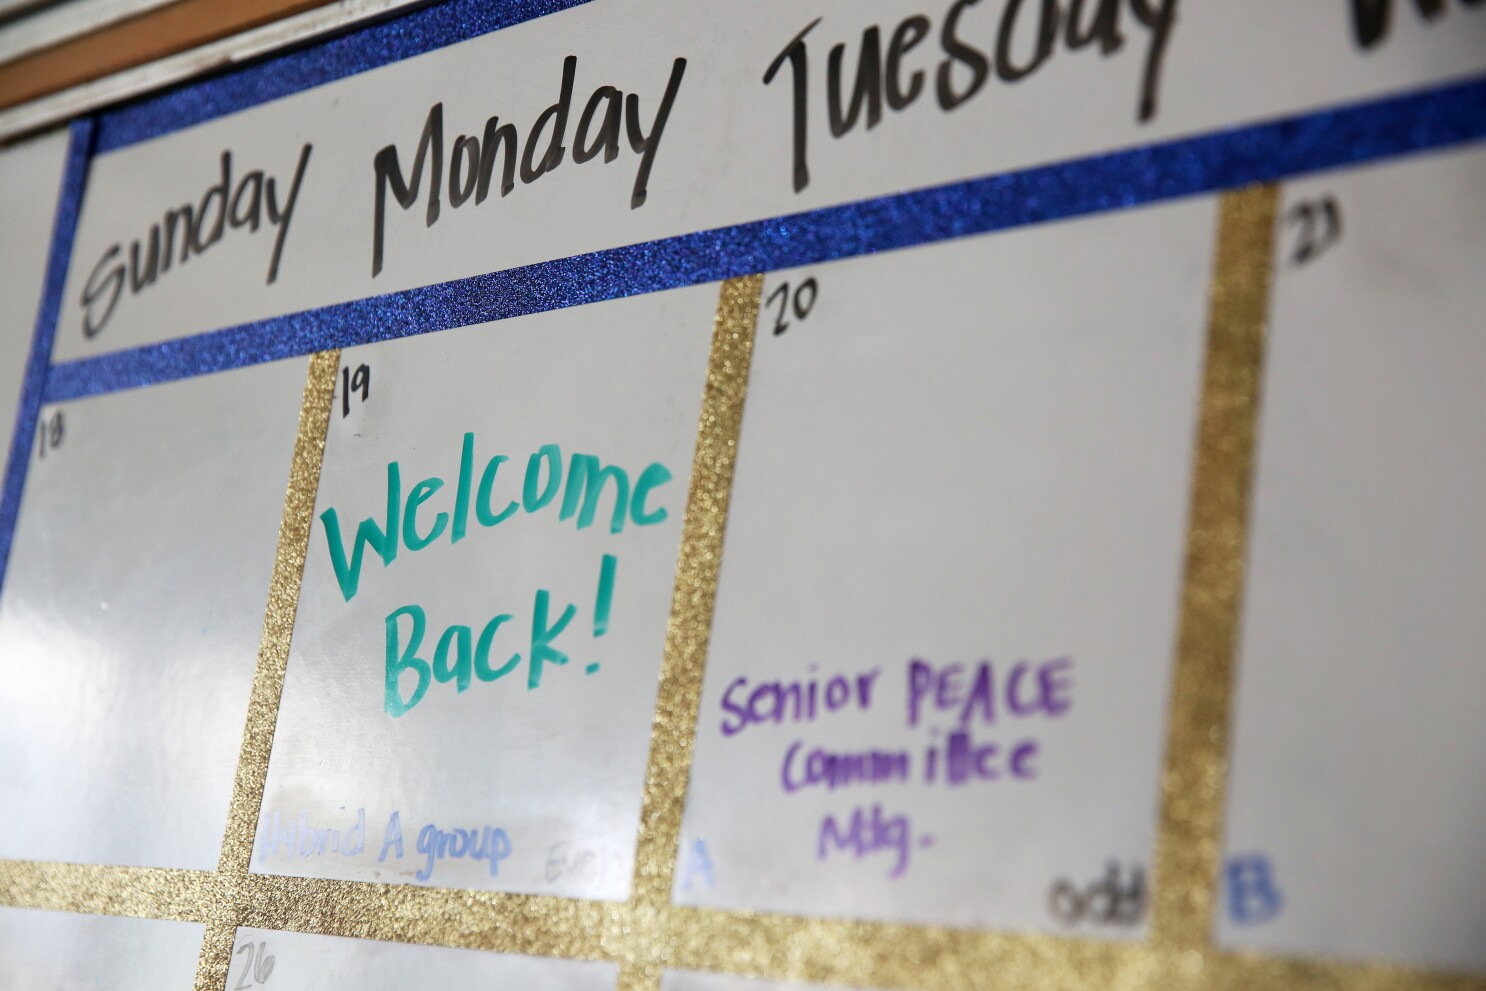 Lausd Calendar 2022 23.For High School Seniors Return To Campus Is A Trip Back In Time Los Angeles Times